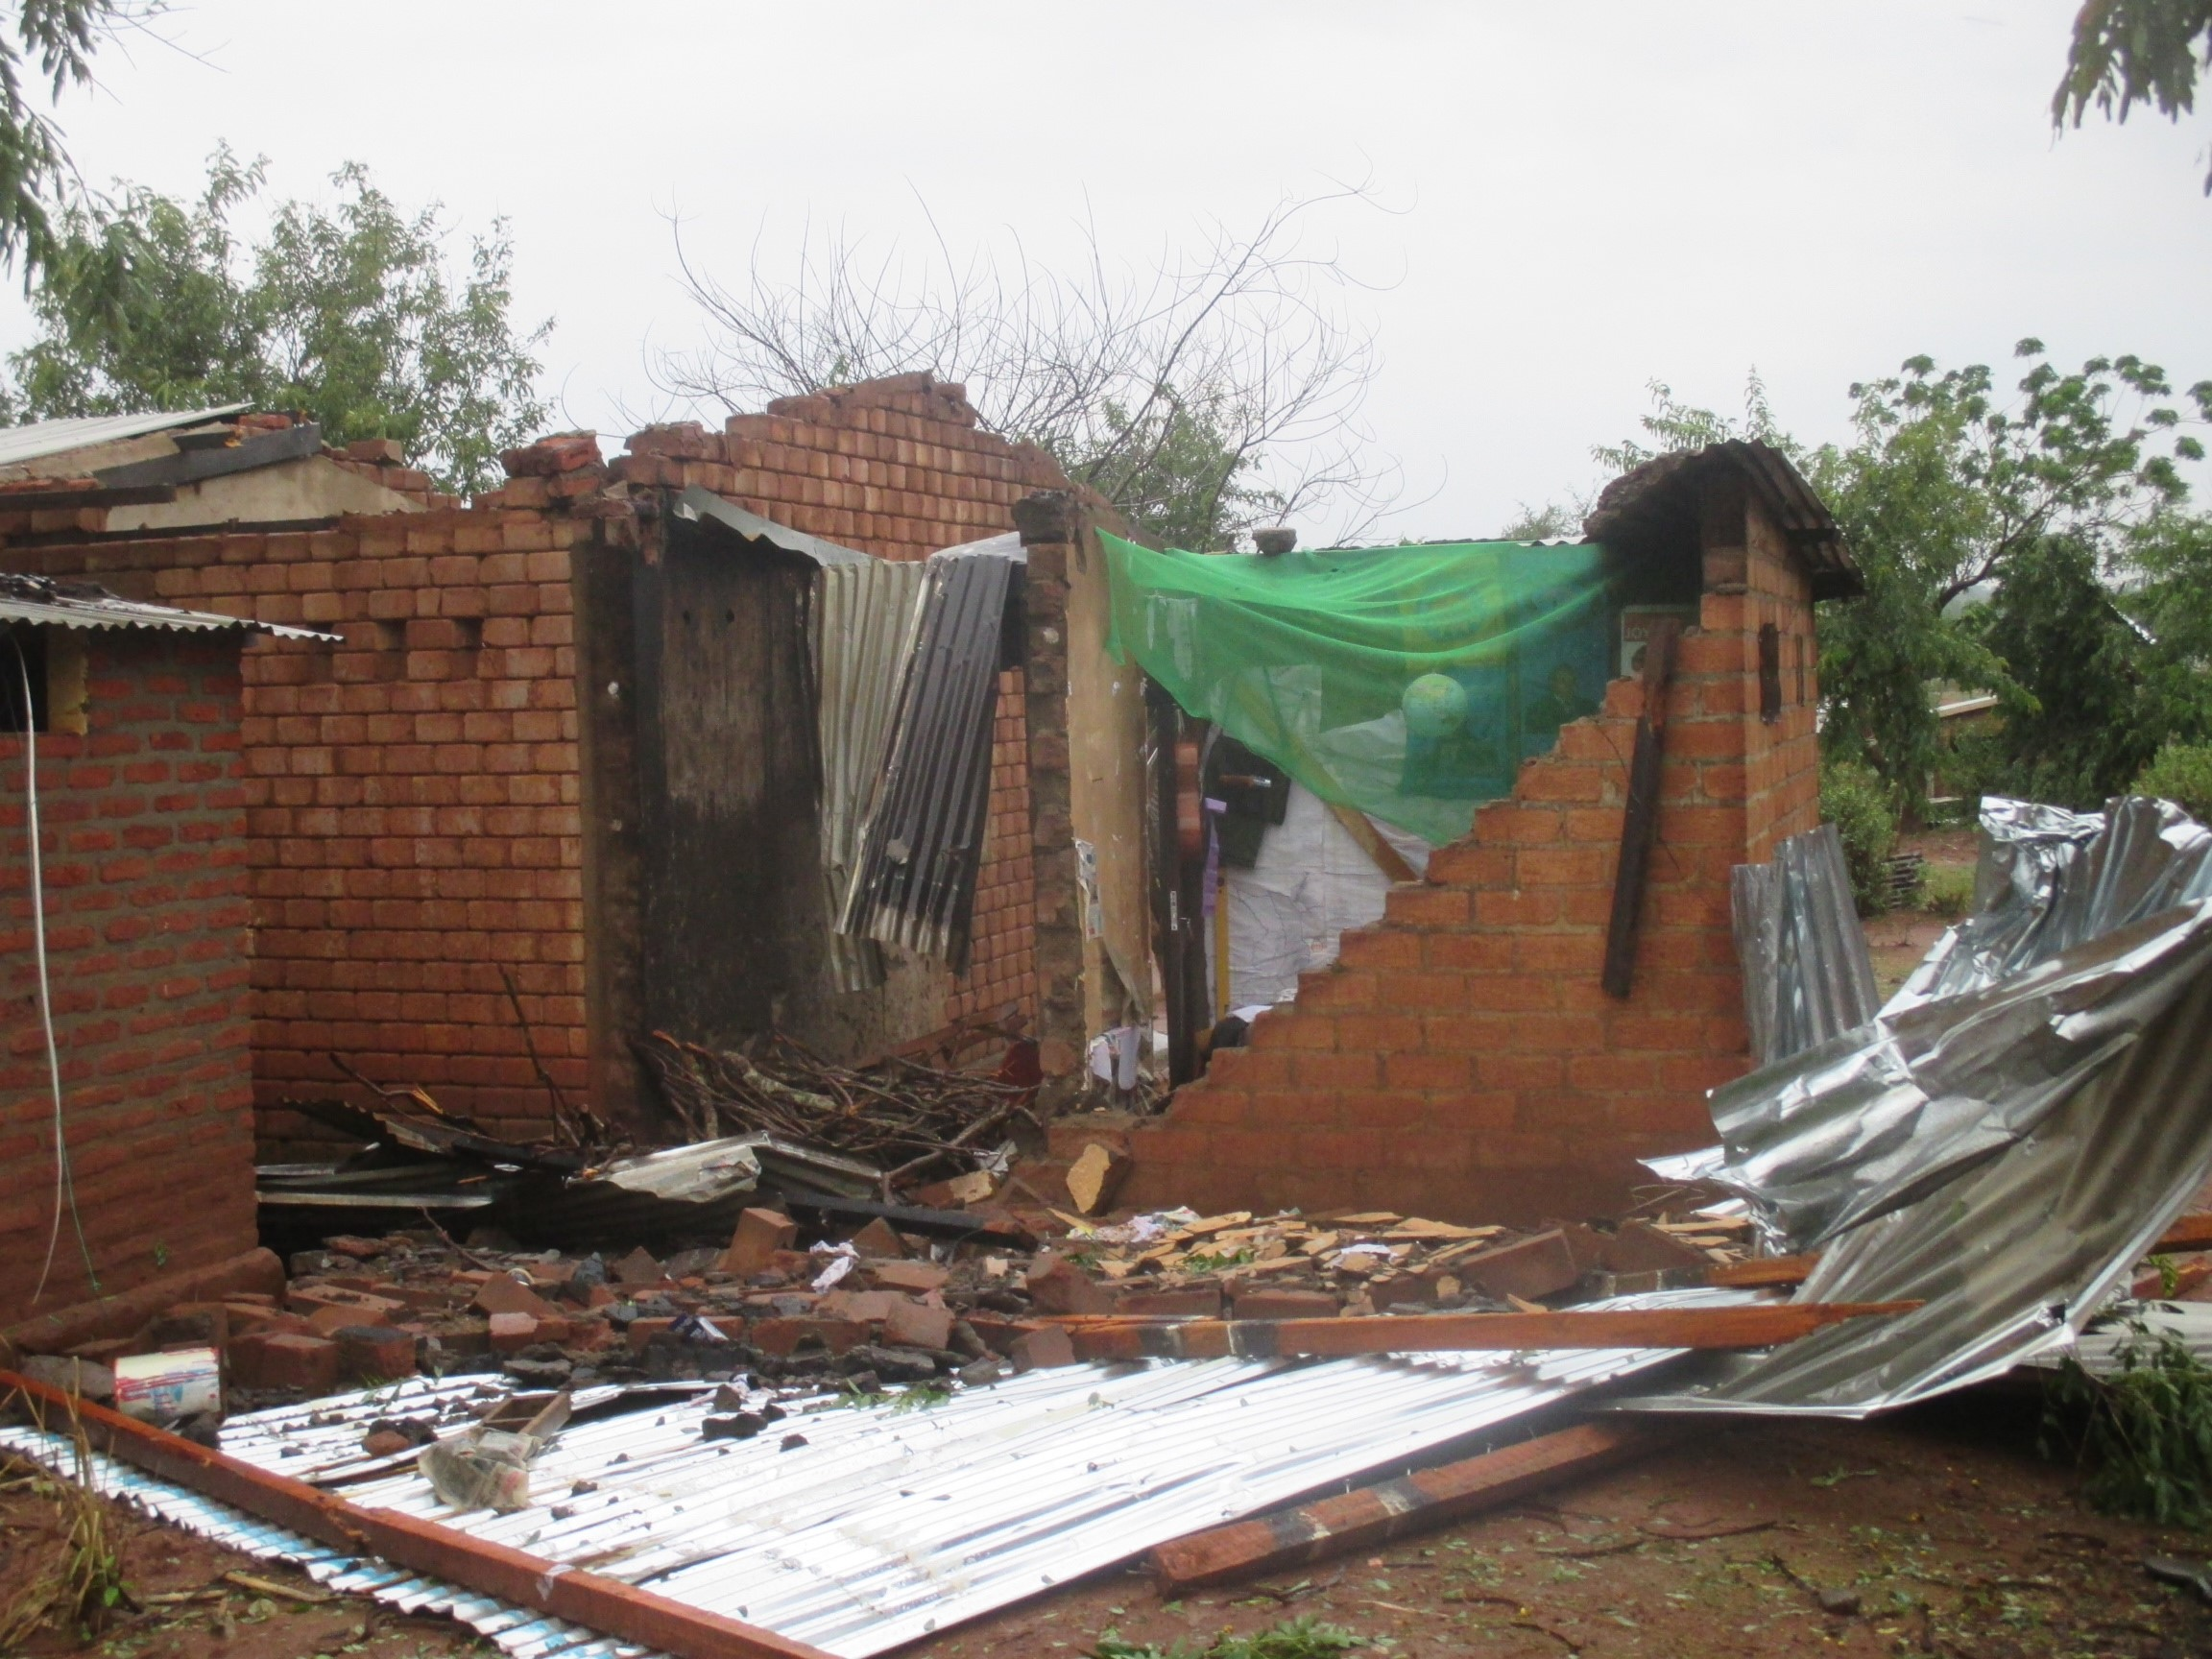 Destruction of shelters in Malawi from heavy rains and flooding